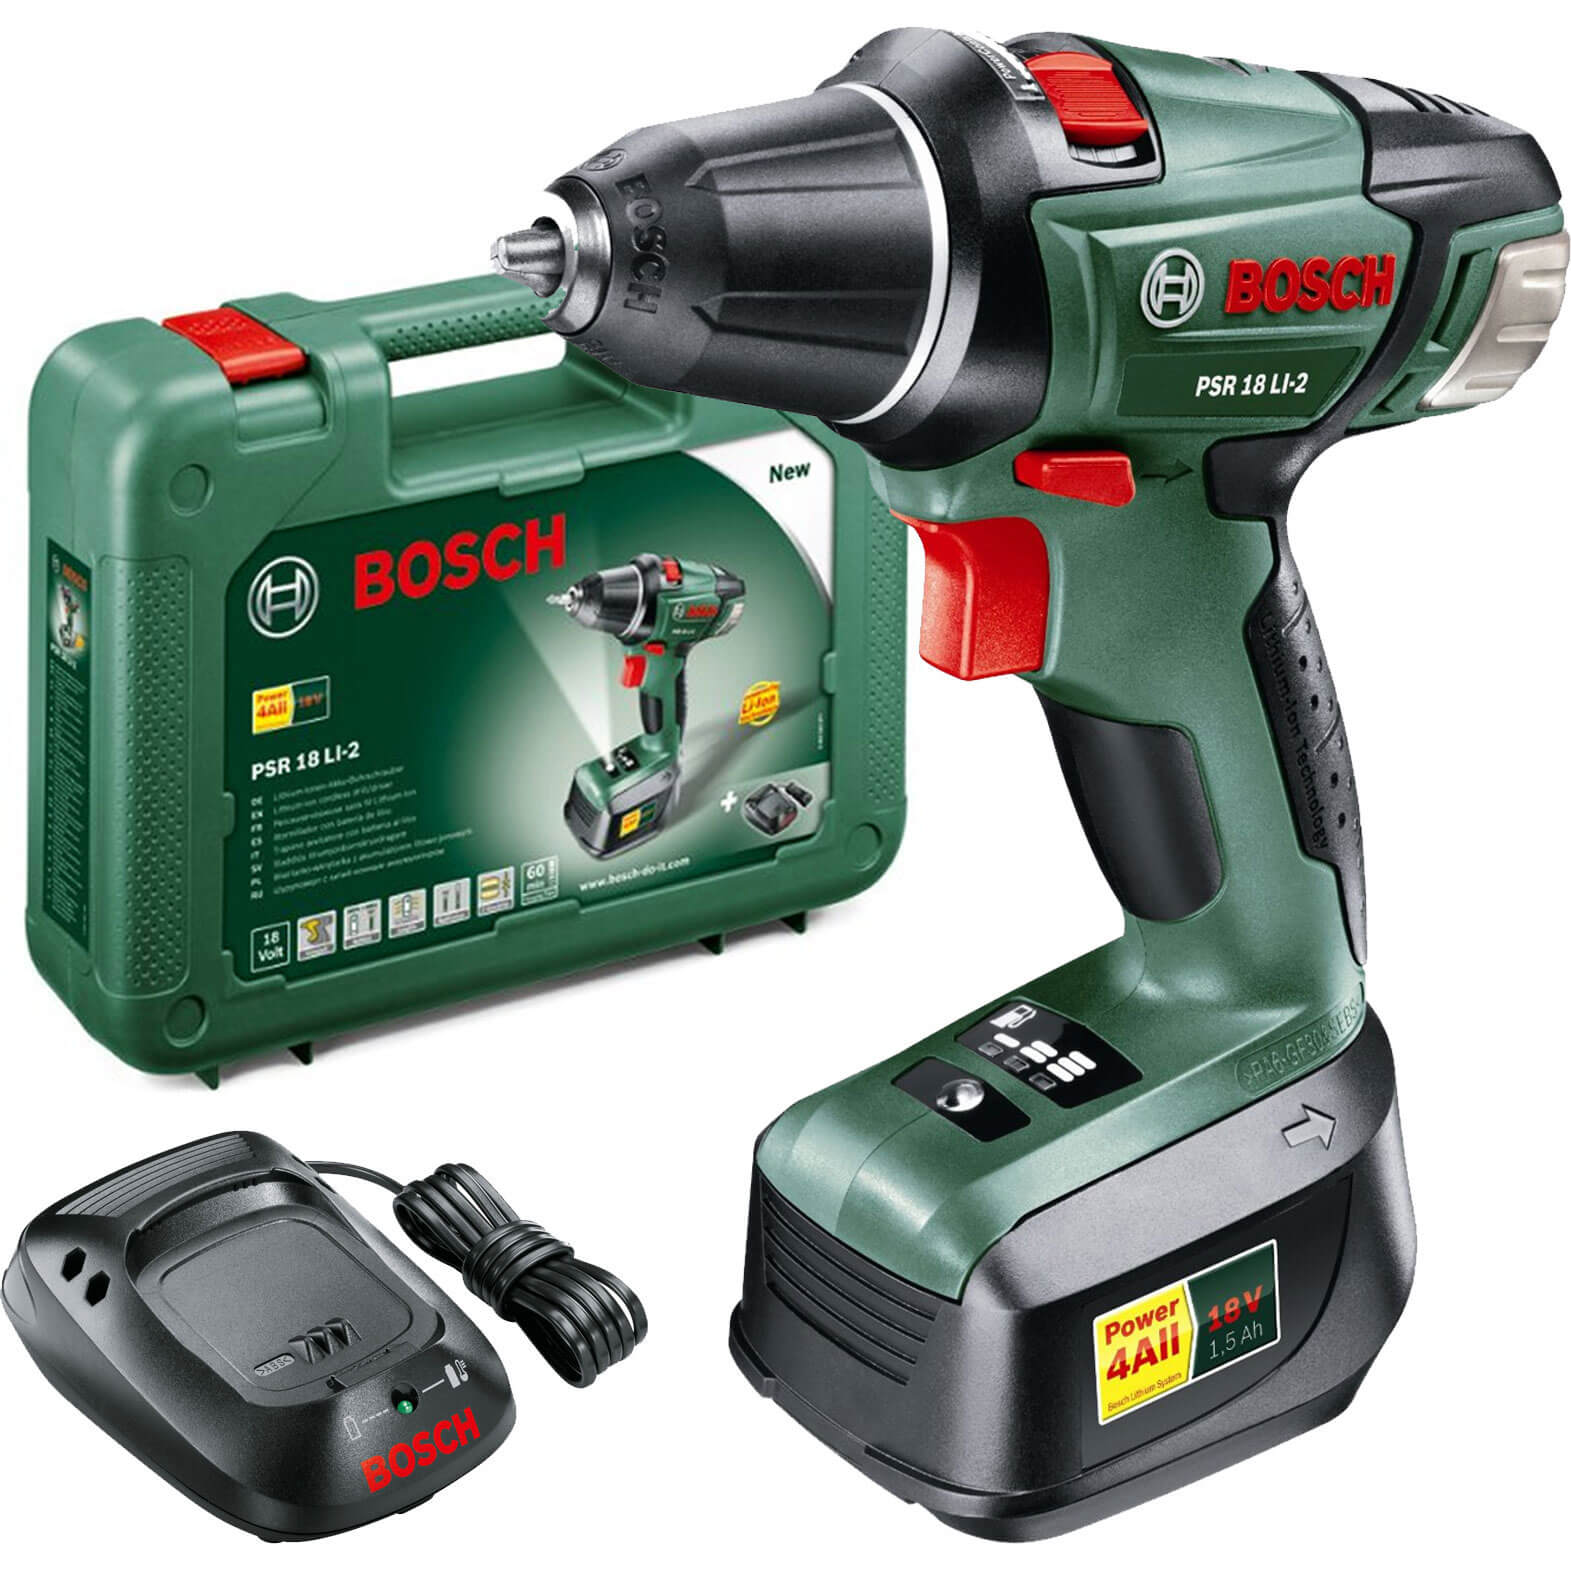 bosch power4all psr 18 li 2 18v cordless compact drill driver without battery or charger. Black Bedroom Furniture Sets. Home Design Ideas